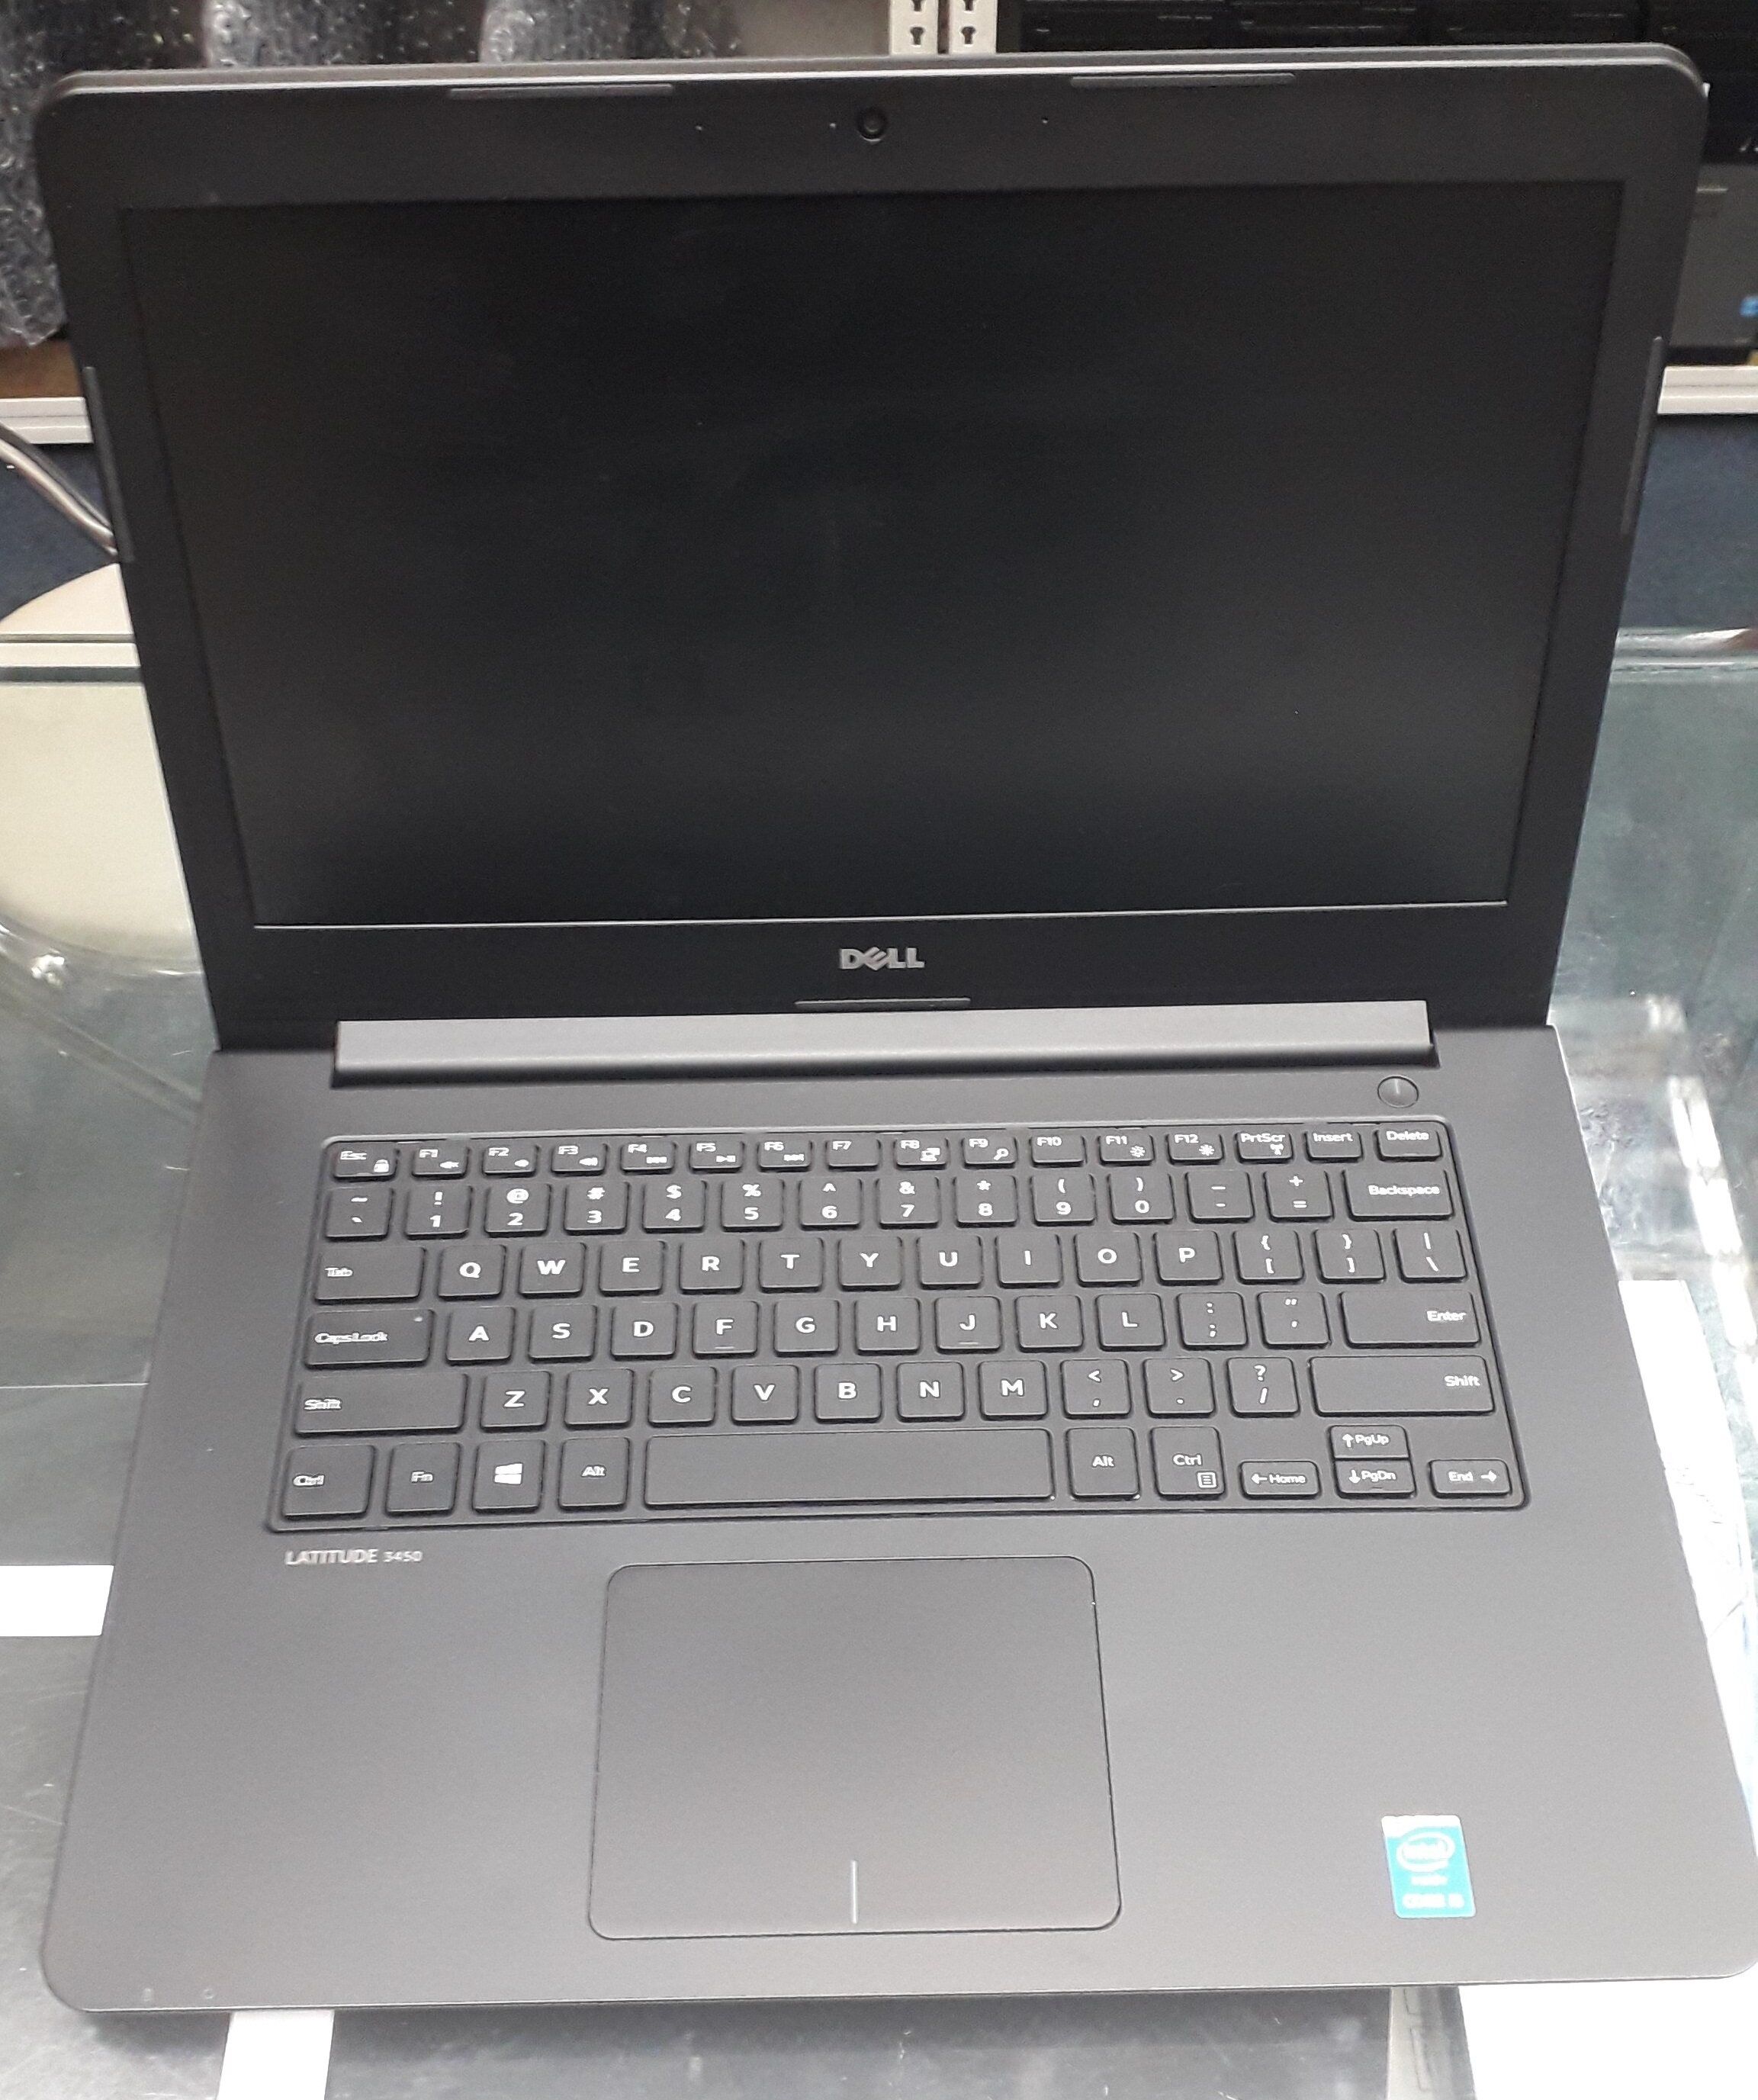 Dell Latitude 3450 Notebook Intel i5 - (5th Gen) @ 2.20Ghz 8GB RAM 500GB HDD W10 [Refurbished] Malaysia